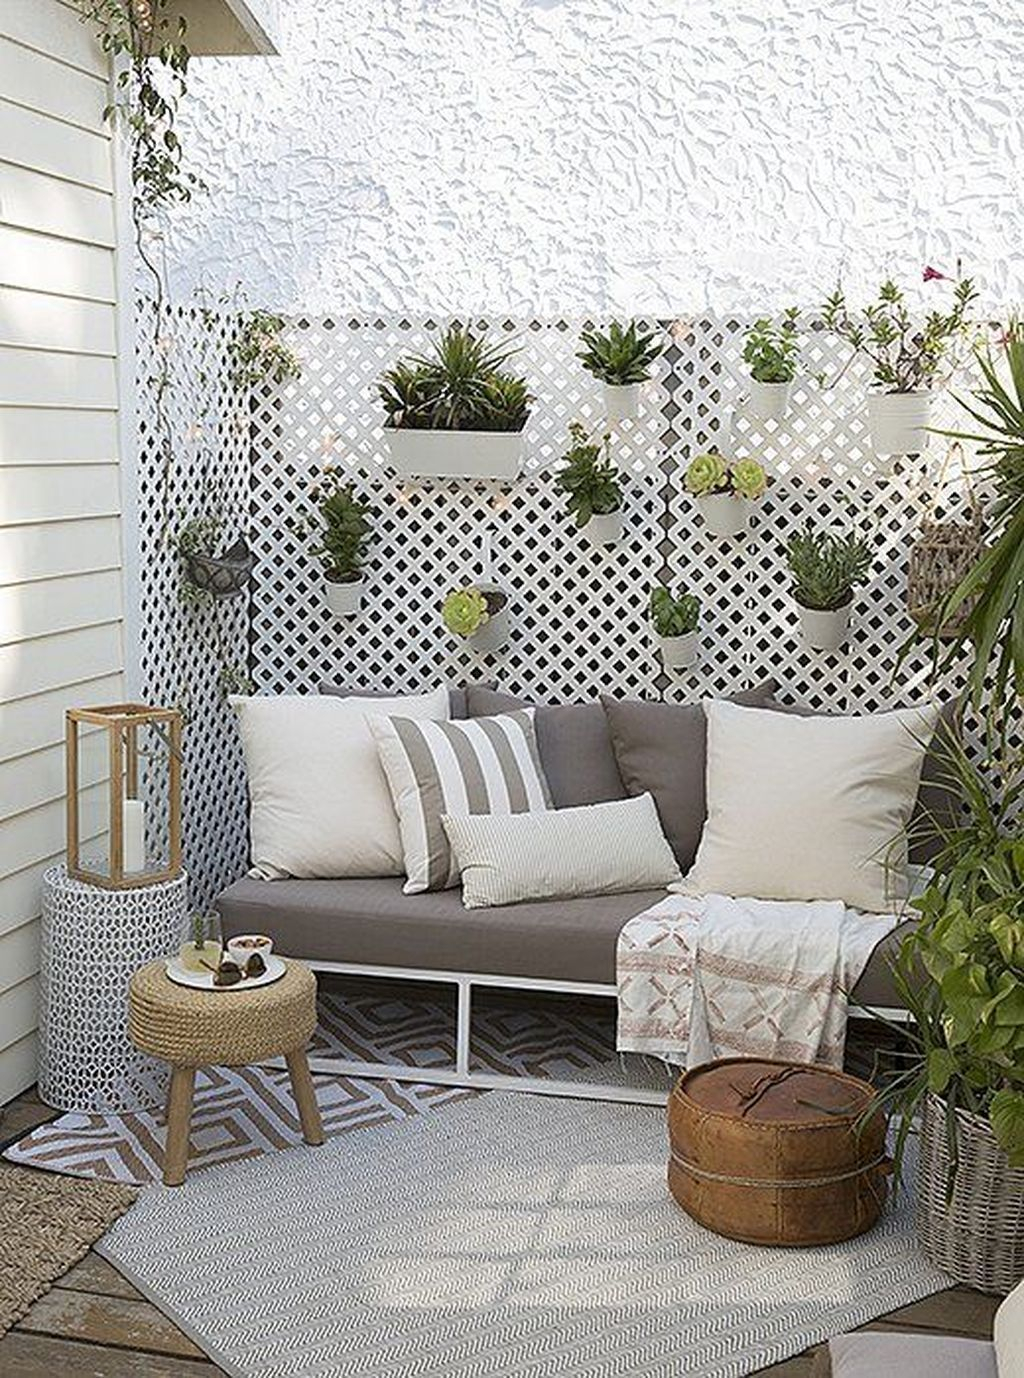 Inspiring Home Patio Ideas For Relaxing Places That Will Amaze You34